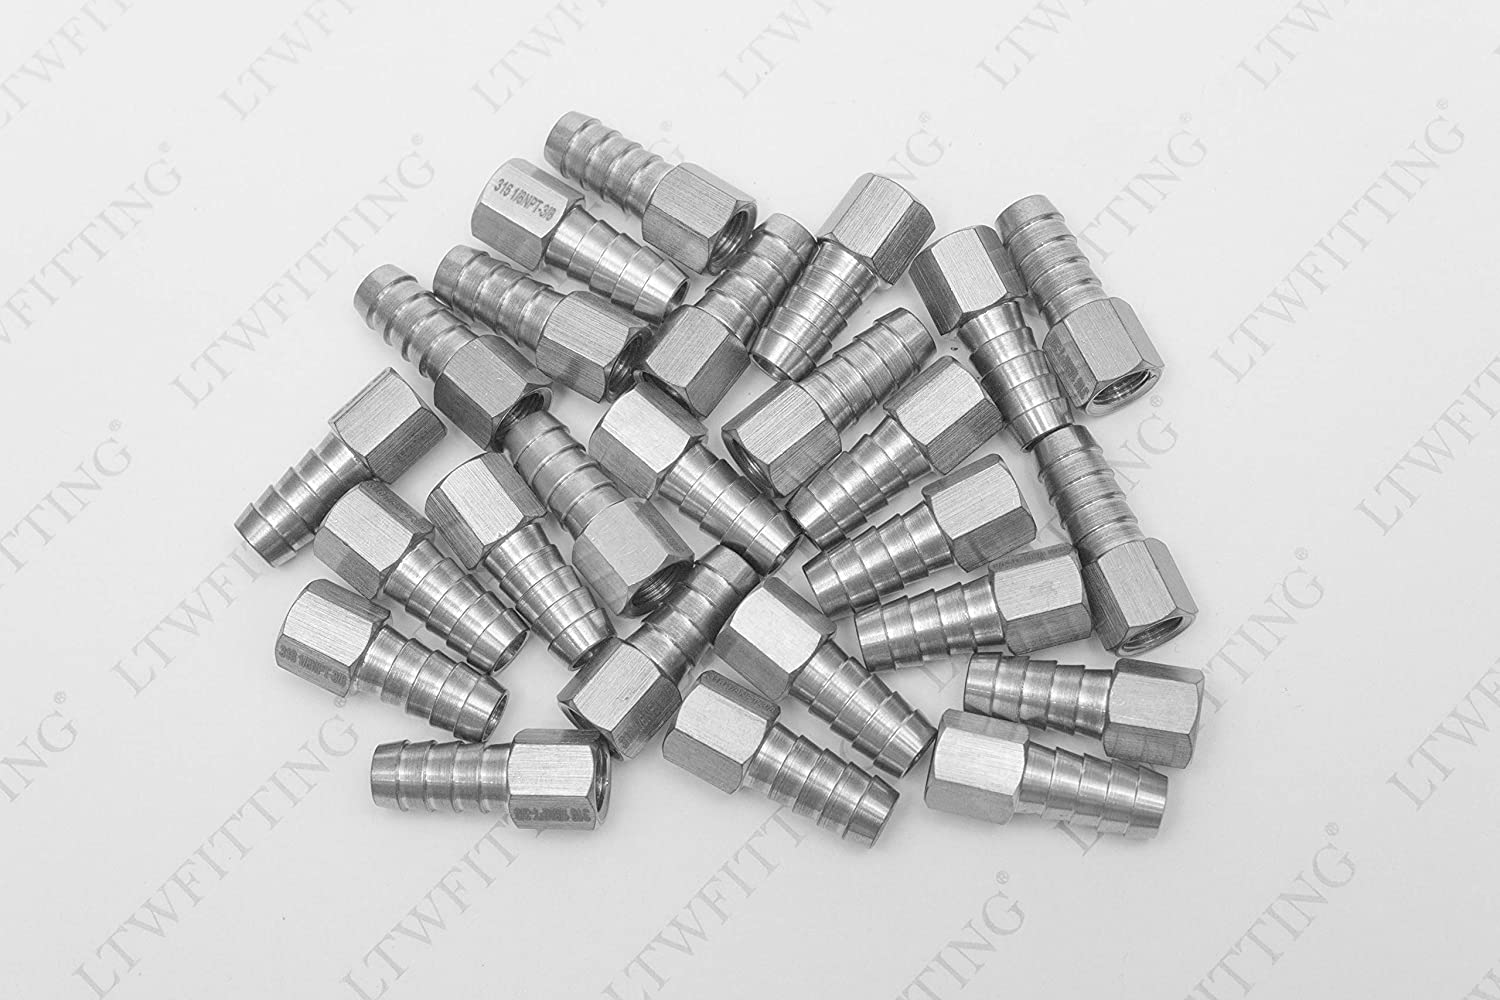 LTWFITTING Bar Production Stainless Steel 316 Barb Fitting Coupler 3//8 Hose ID x 1//8 Female NPT Air Fuel Water Pack of 25